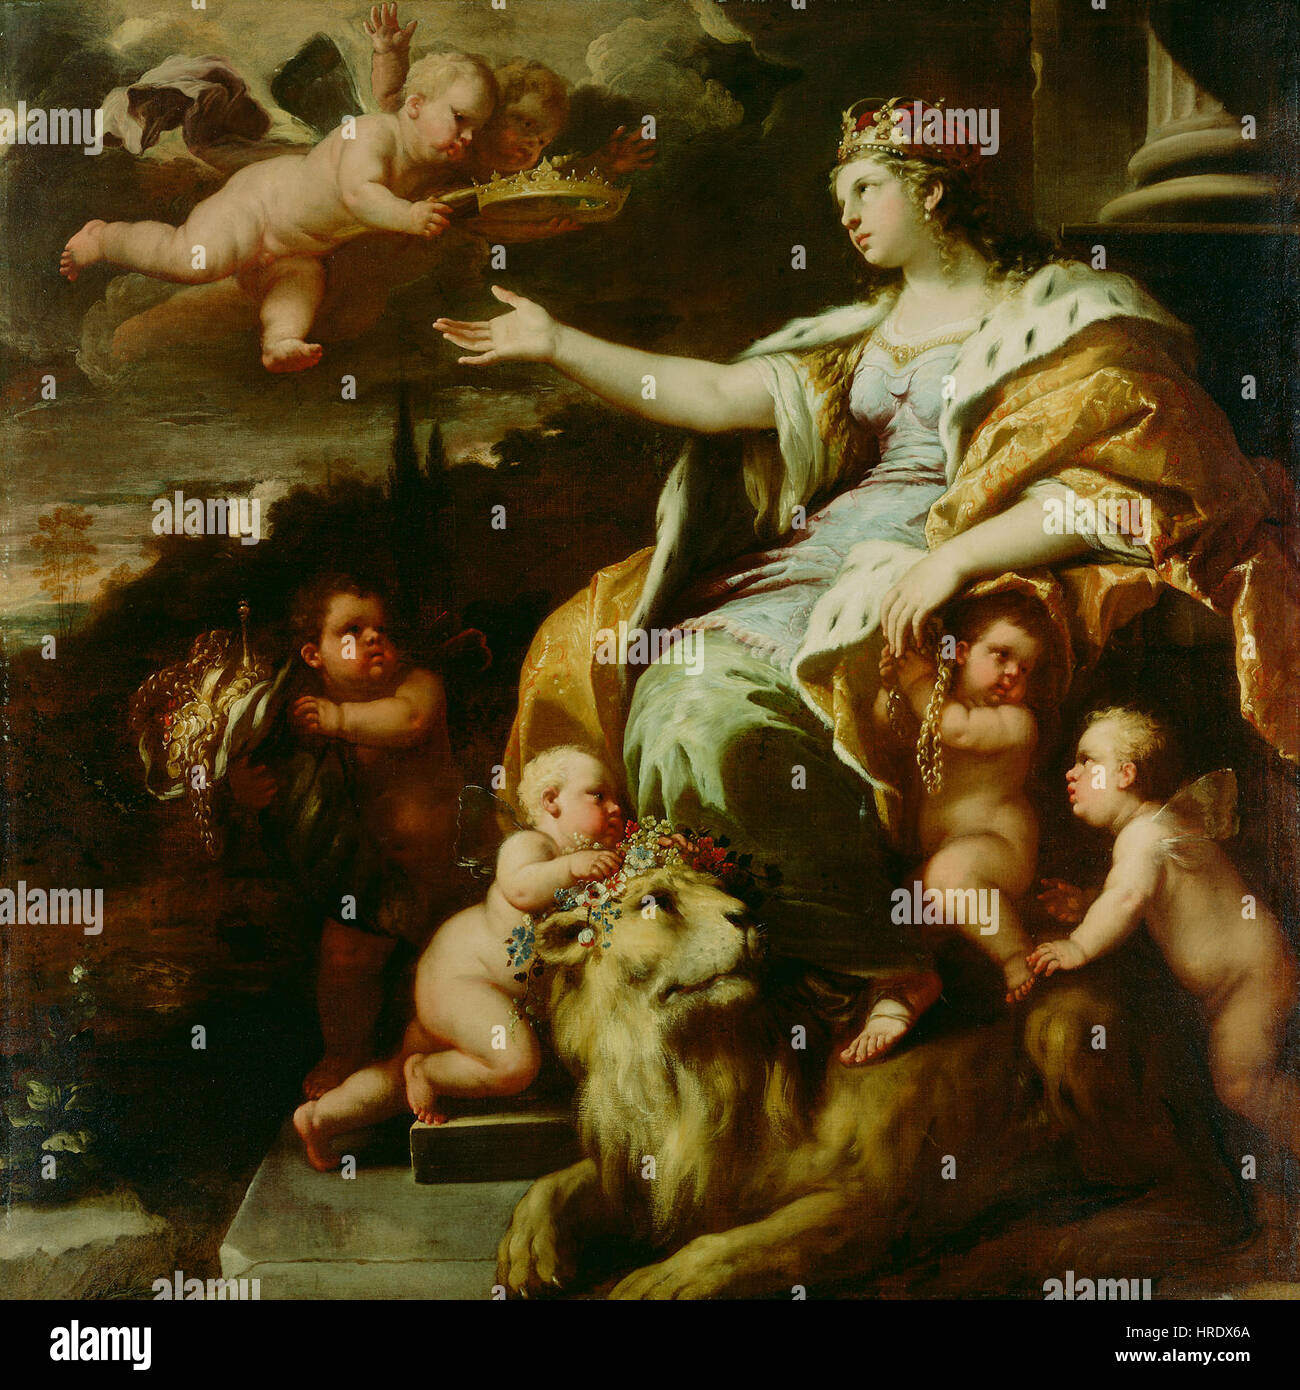 Luca Giordano - Allegory of Magnanimity - 69.PA.28 - J. Paul Getty Museum Stock Photo